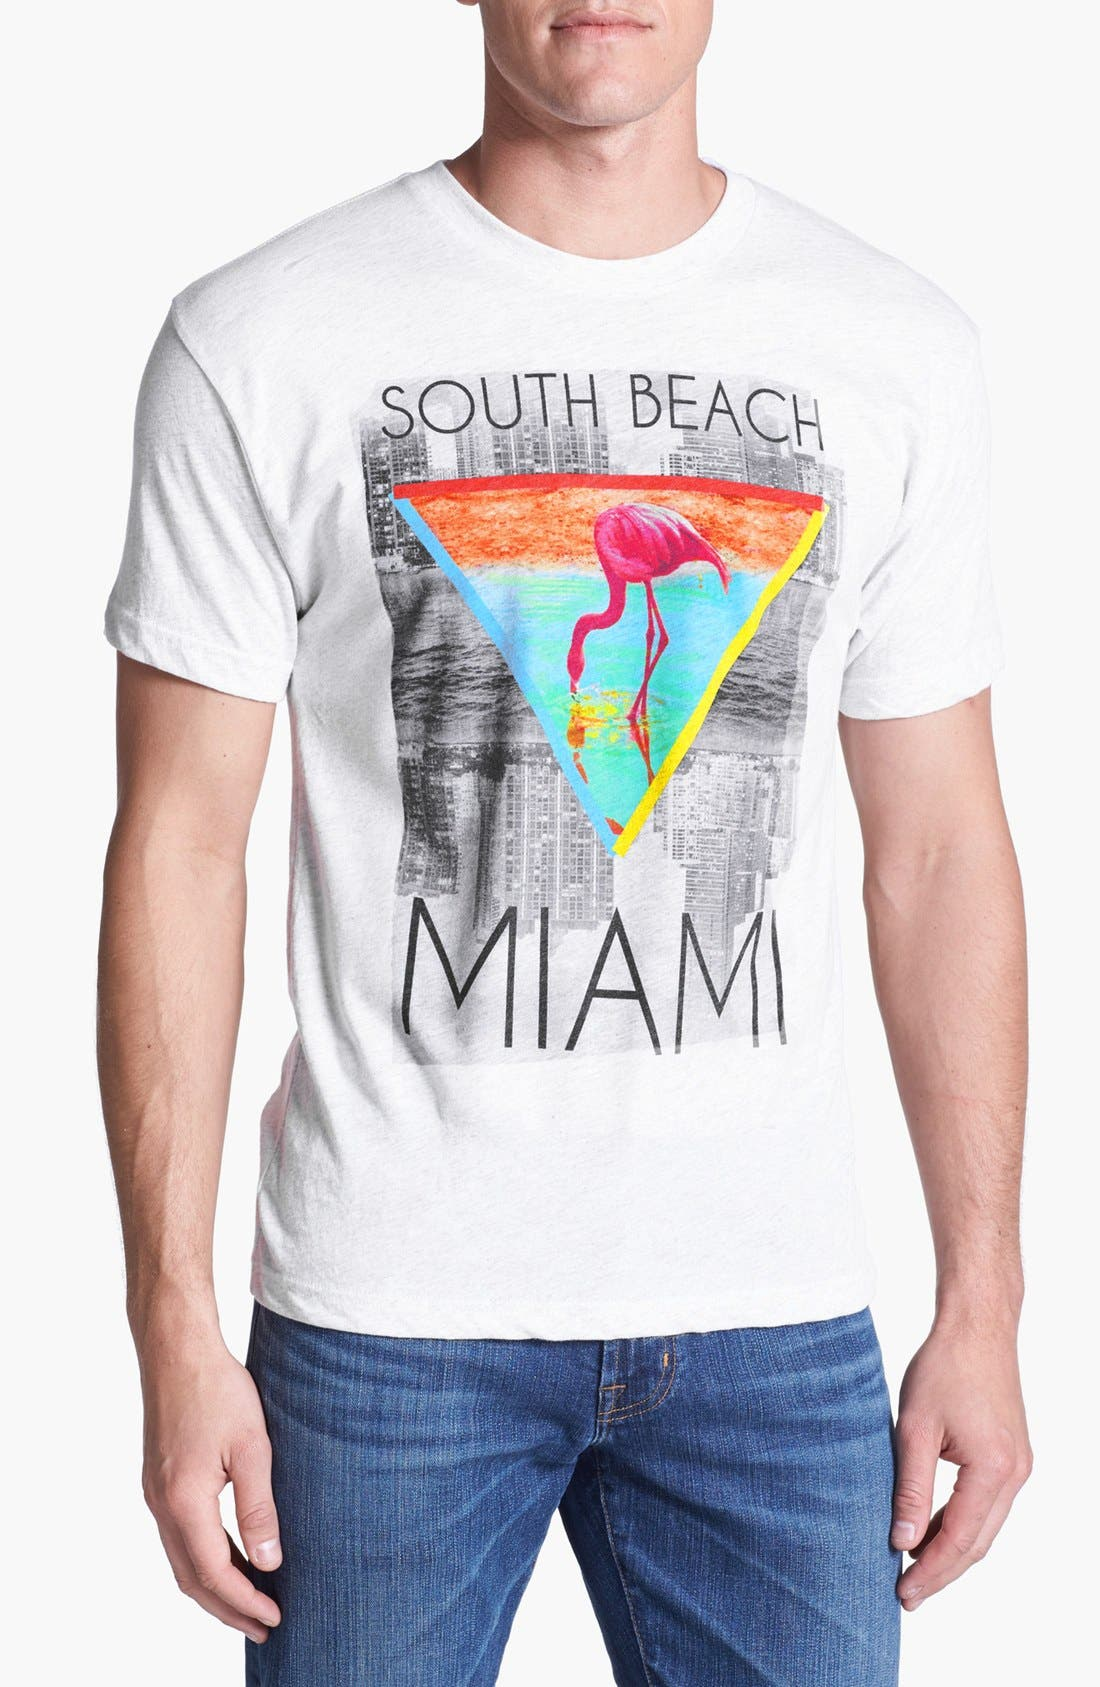 Alternate Image 1 Selected - Bowery Supply 'South Beach' Graphic T-Shirt